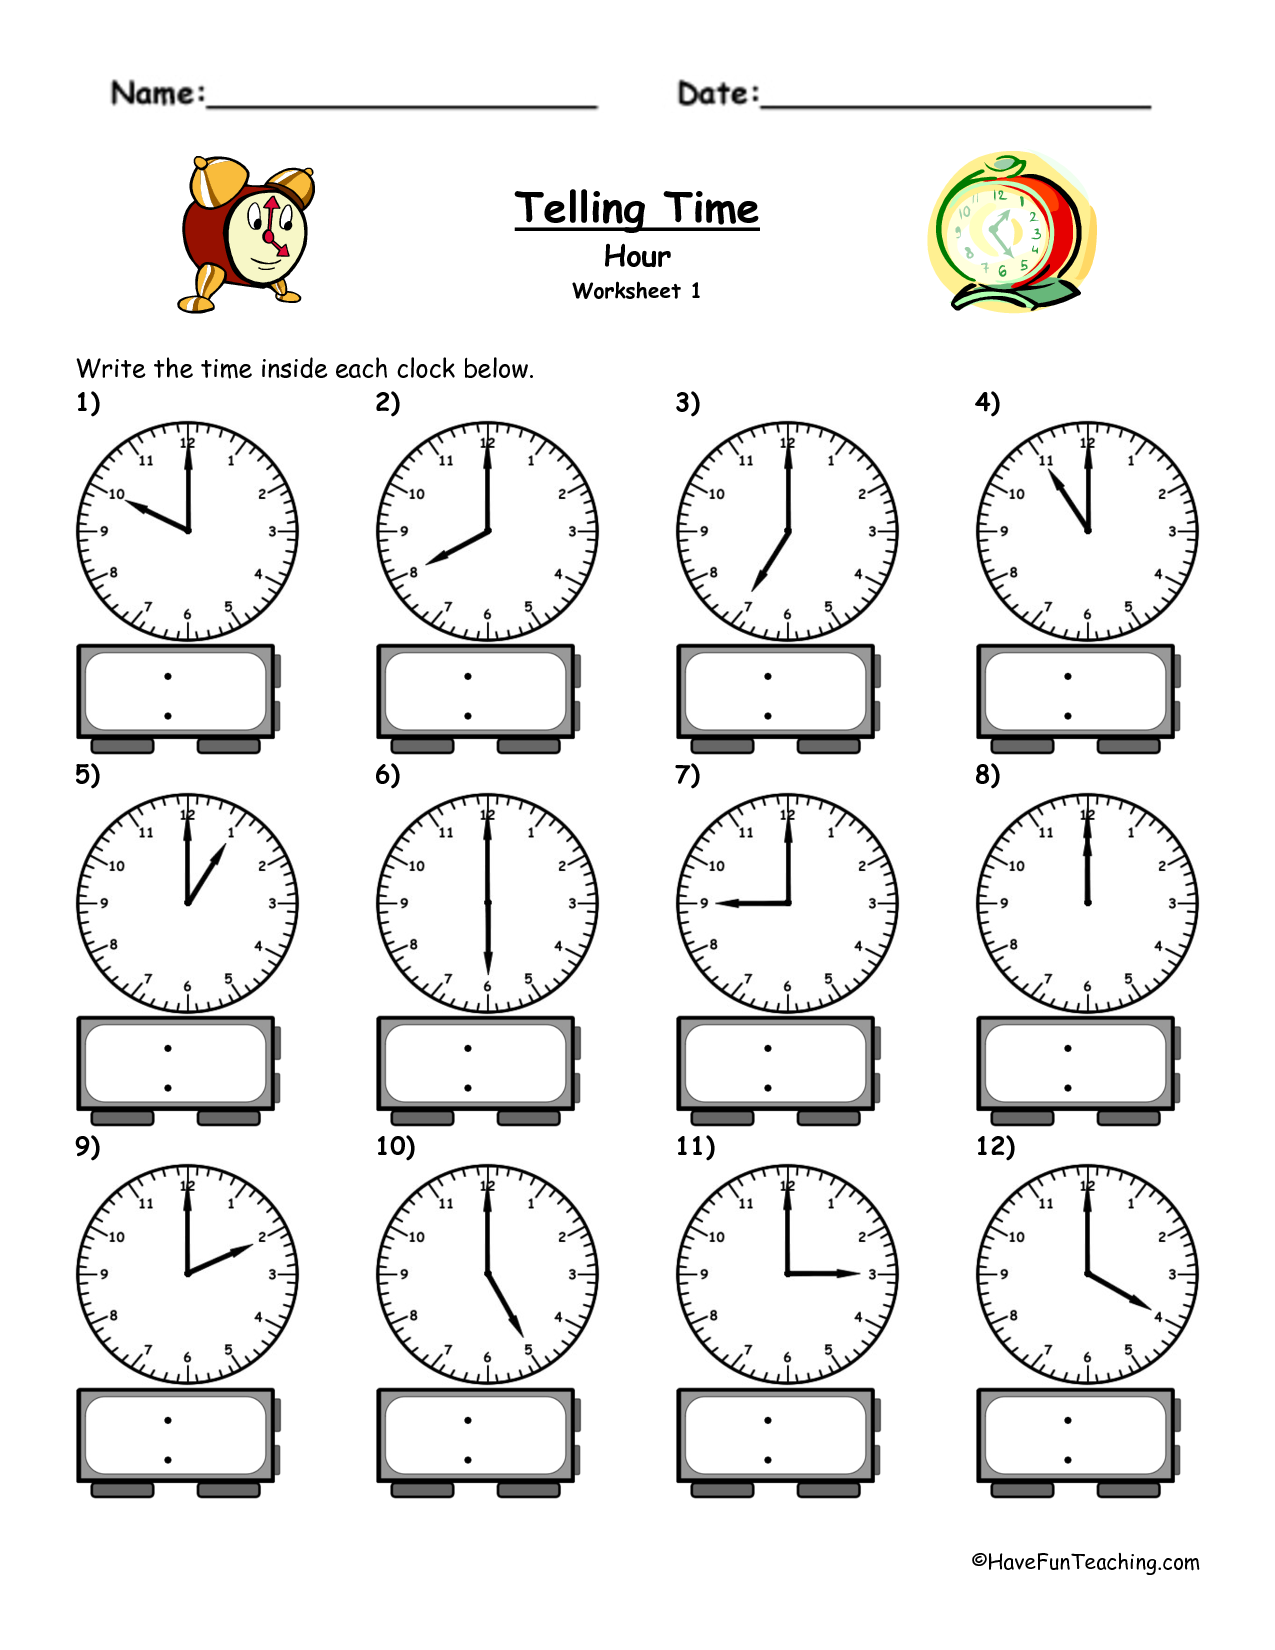 Worksheets Worksheets For Telling Time time worksheets telling favorite recipes worksheets